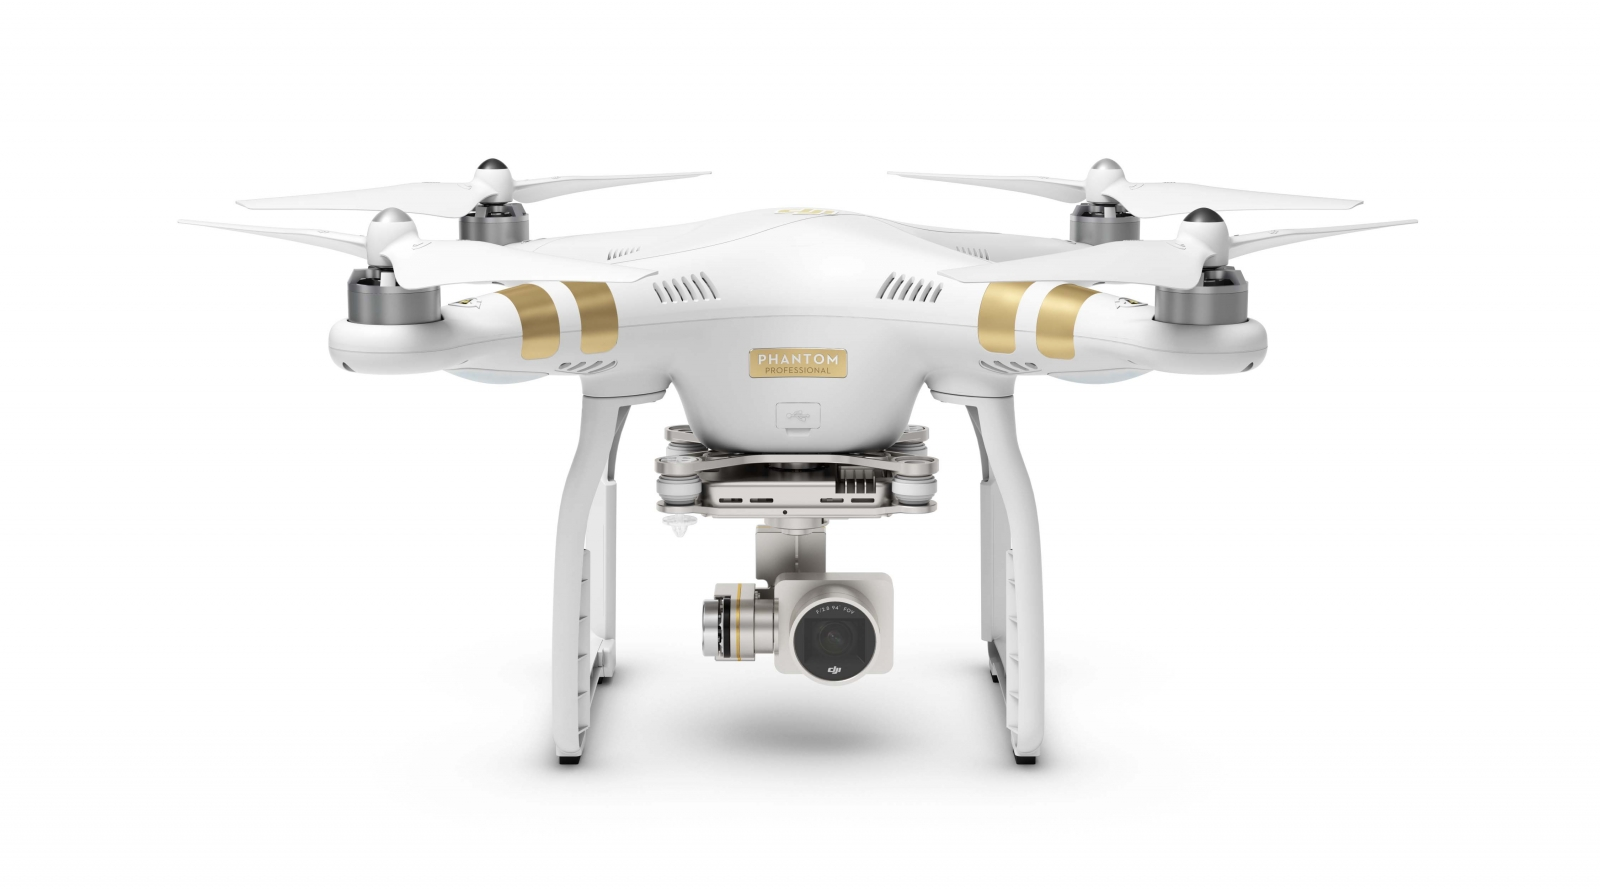 The new DJI Phantom 3